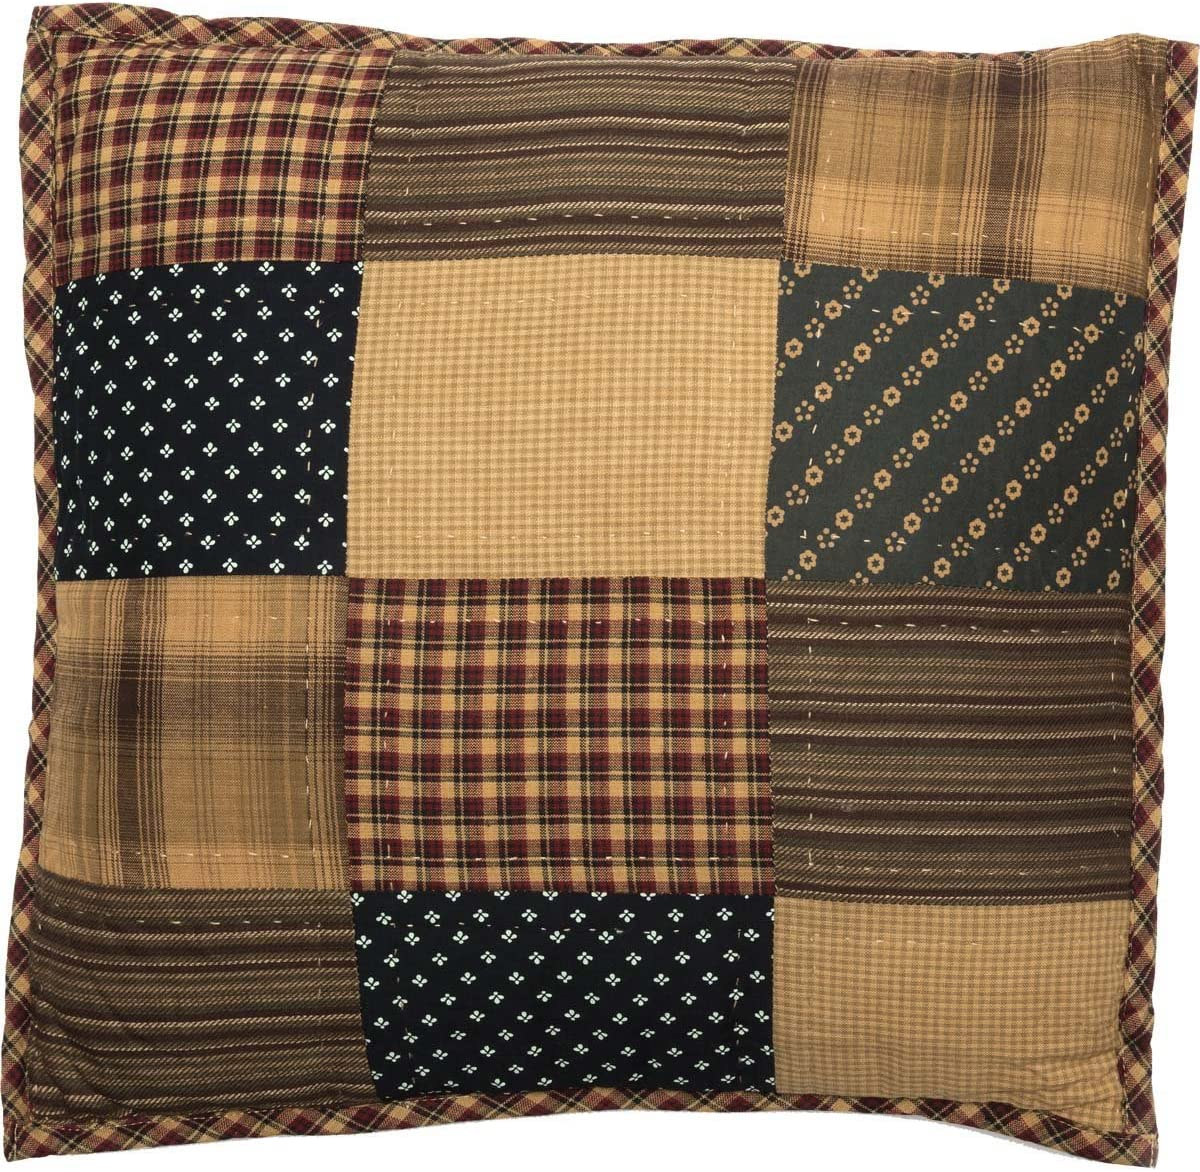 VHC Brands Americana Primitive Pillows Throws-Patriotic Patch Quilted 16 x 16 Pillow, Deep Red